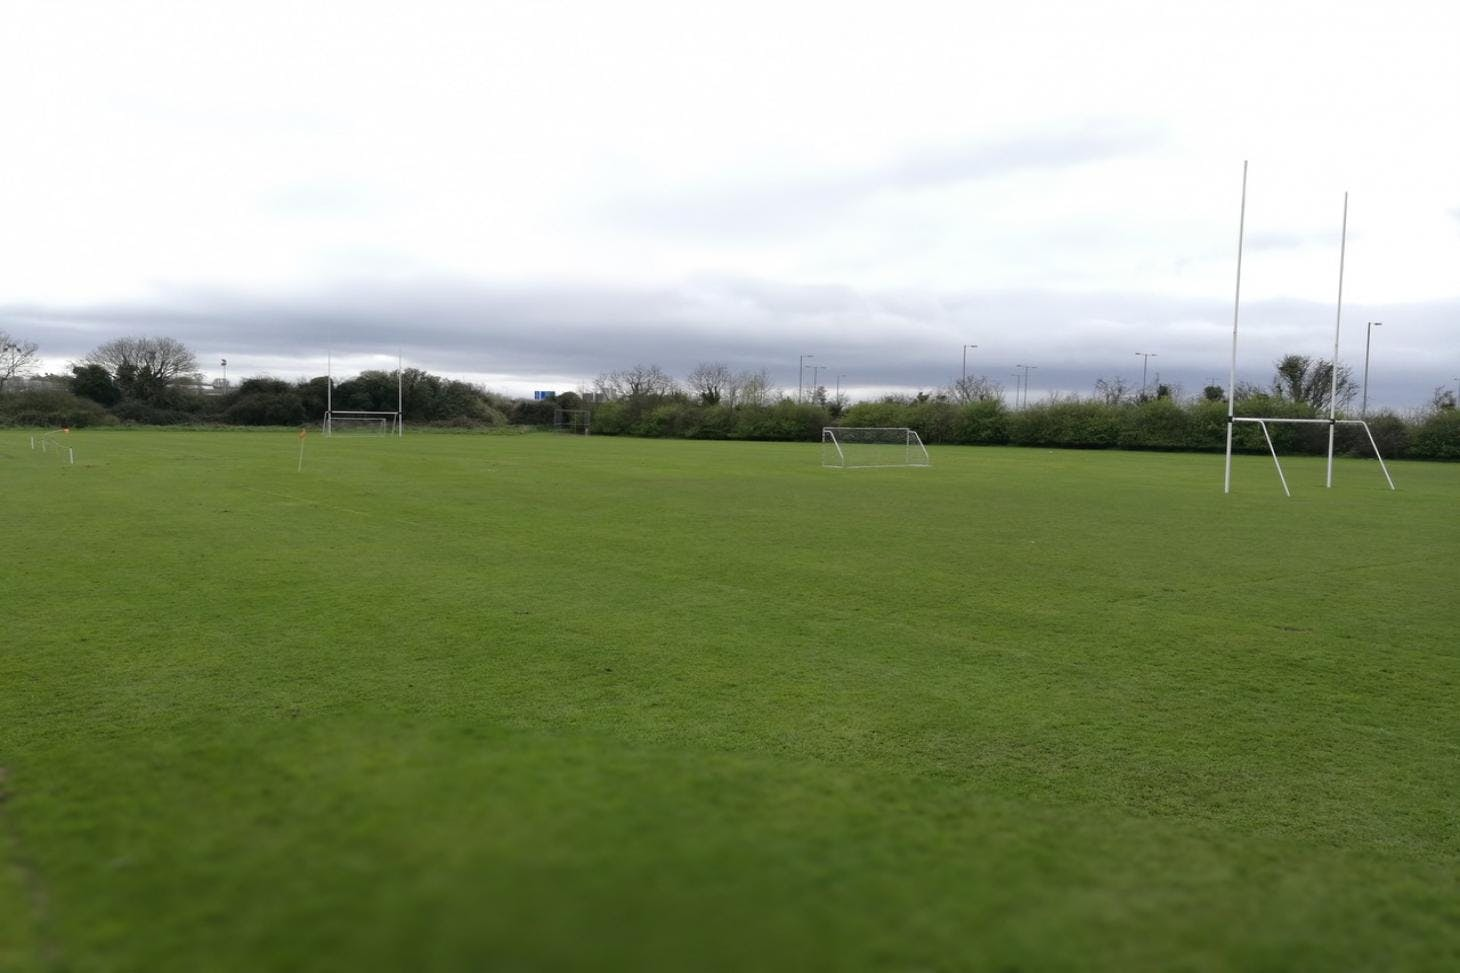 Royal College of Surgeons Sports Grounds 7 a side | Grass football pitch